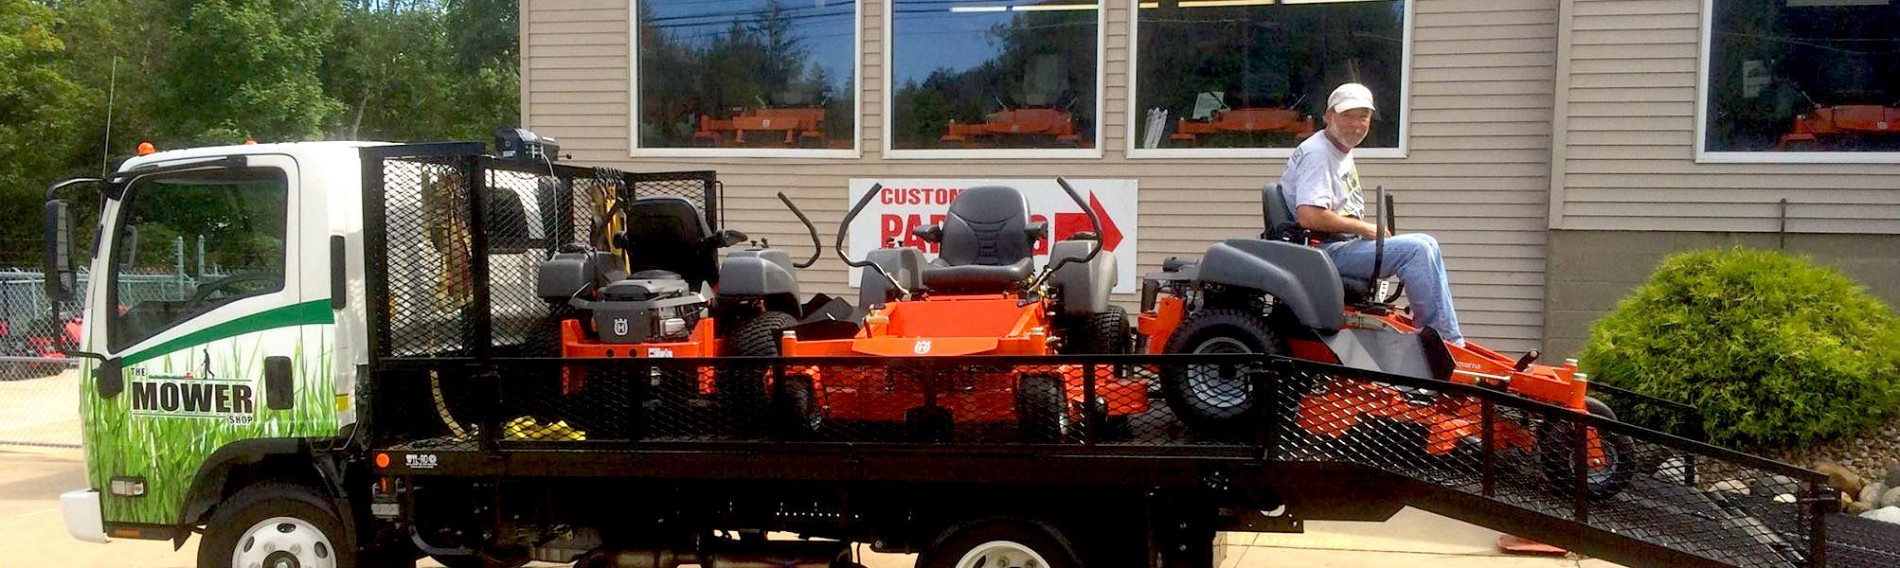 mower shop provides delivery of your mower